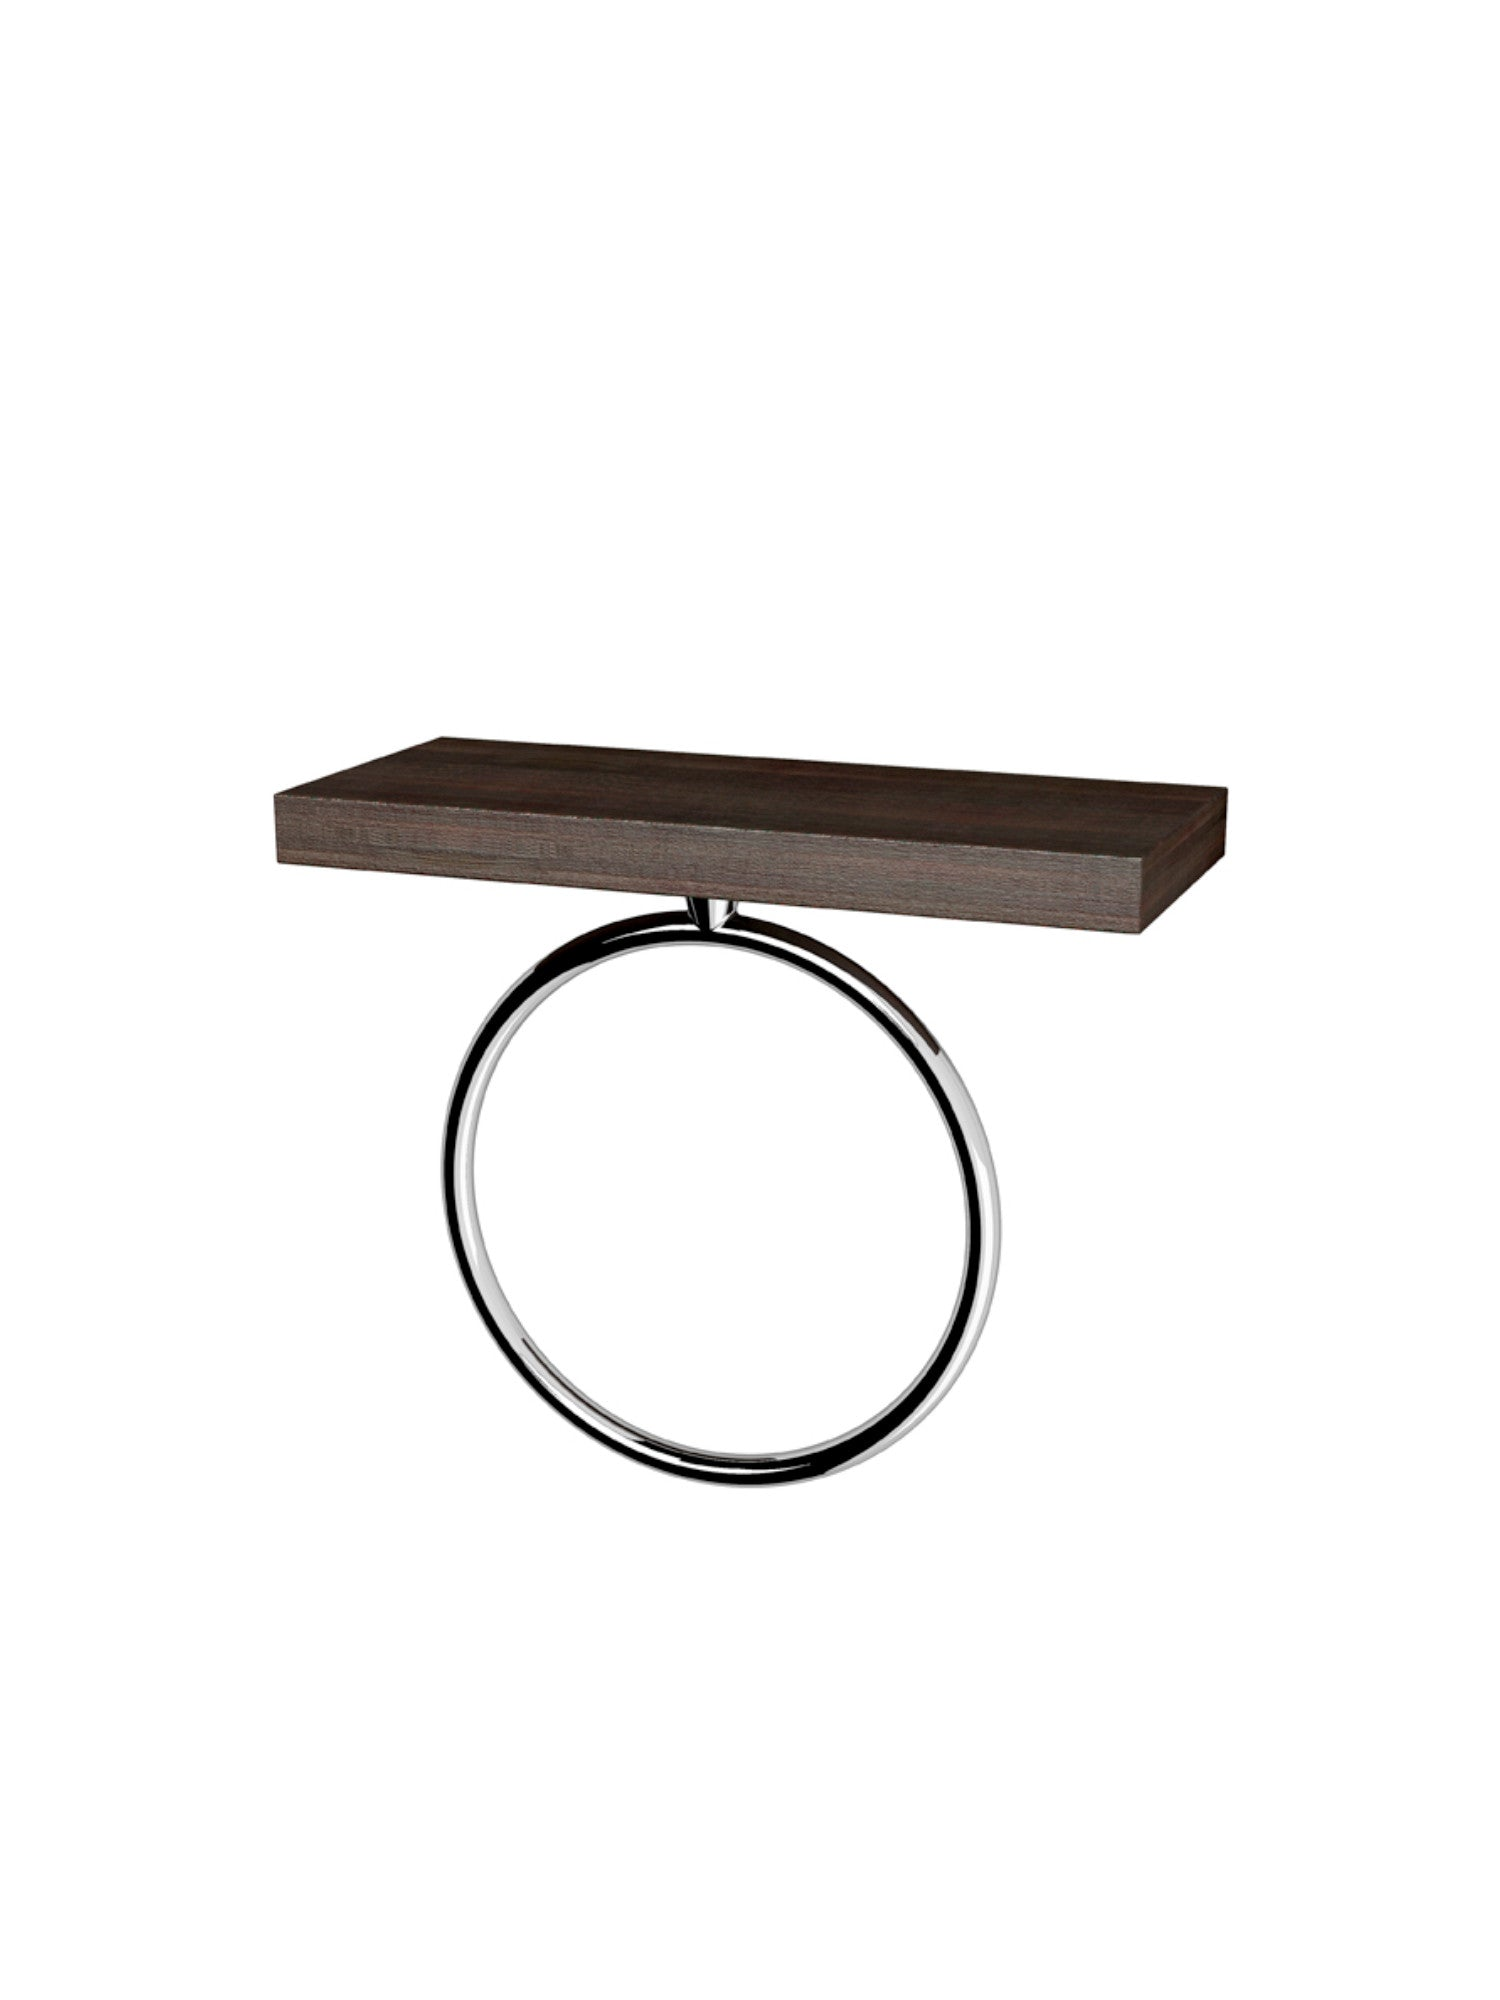 Haiku Towel Ring Wood #12504-07